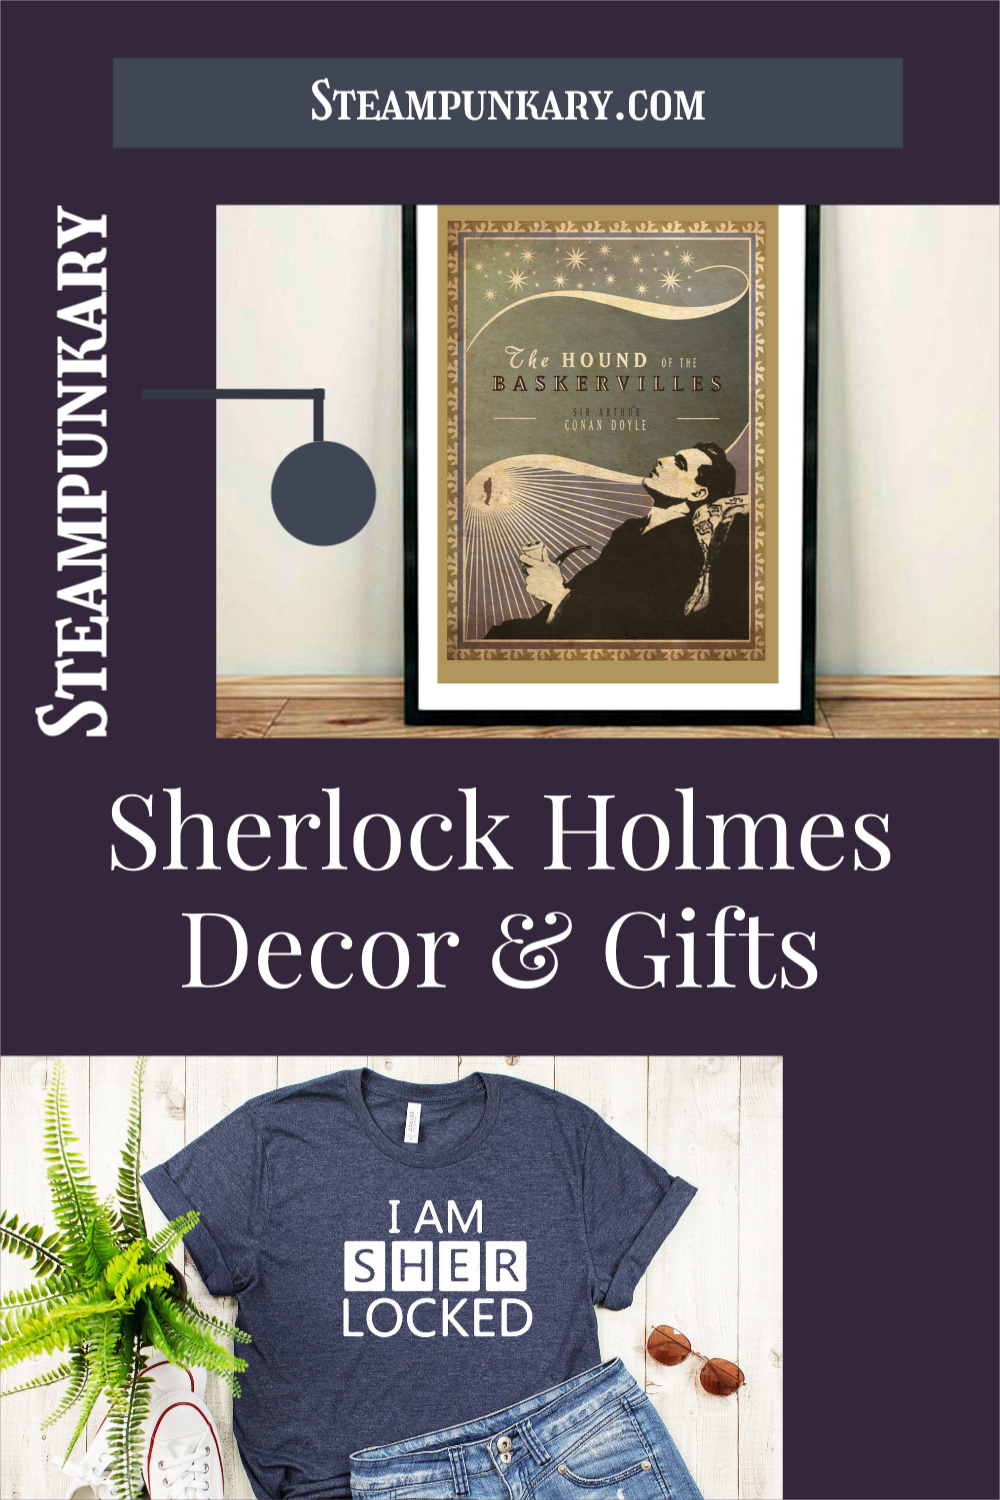 Sherlock Holmes Detective Home Decor and Gifts